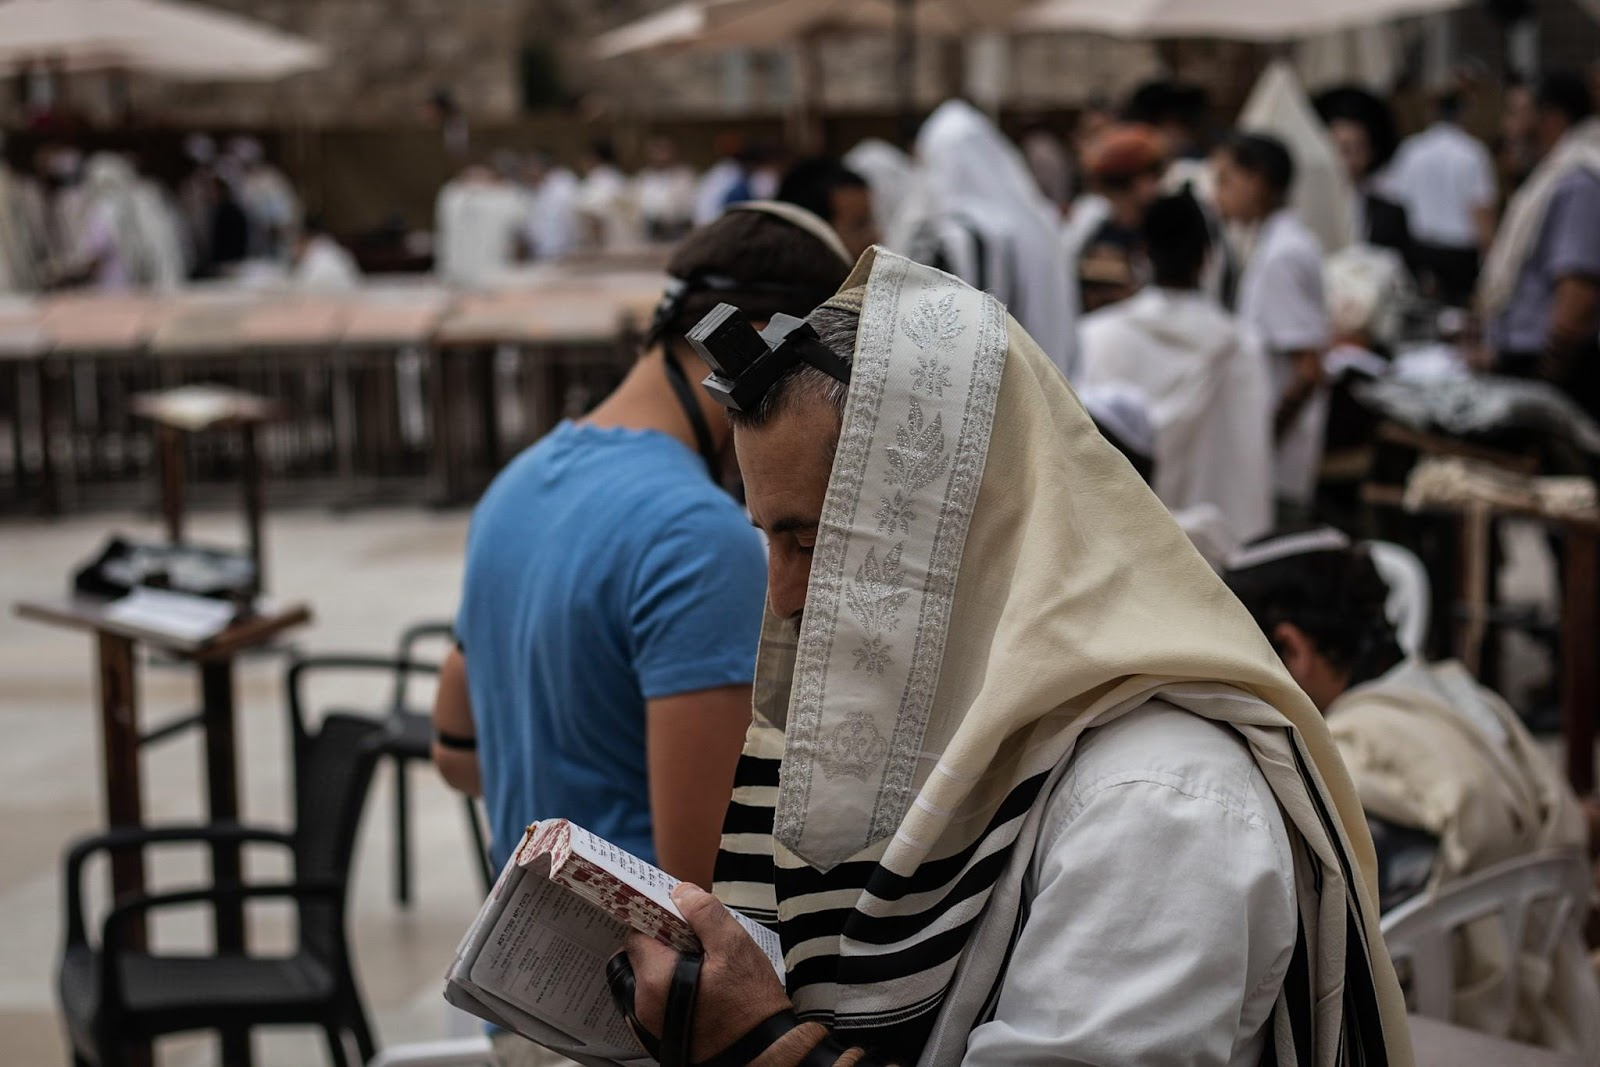 A Jew praying at the Western Wall, covered in Tallit wearing Tefillin